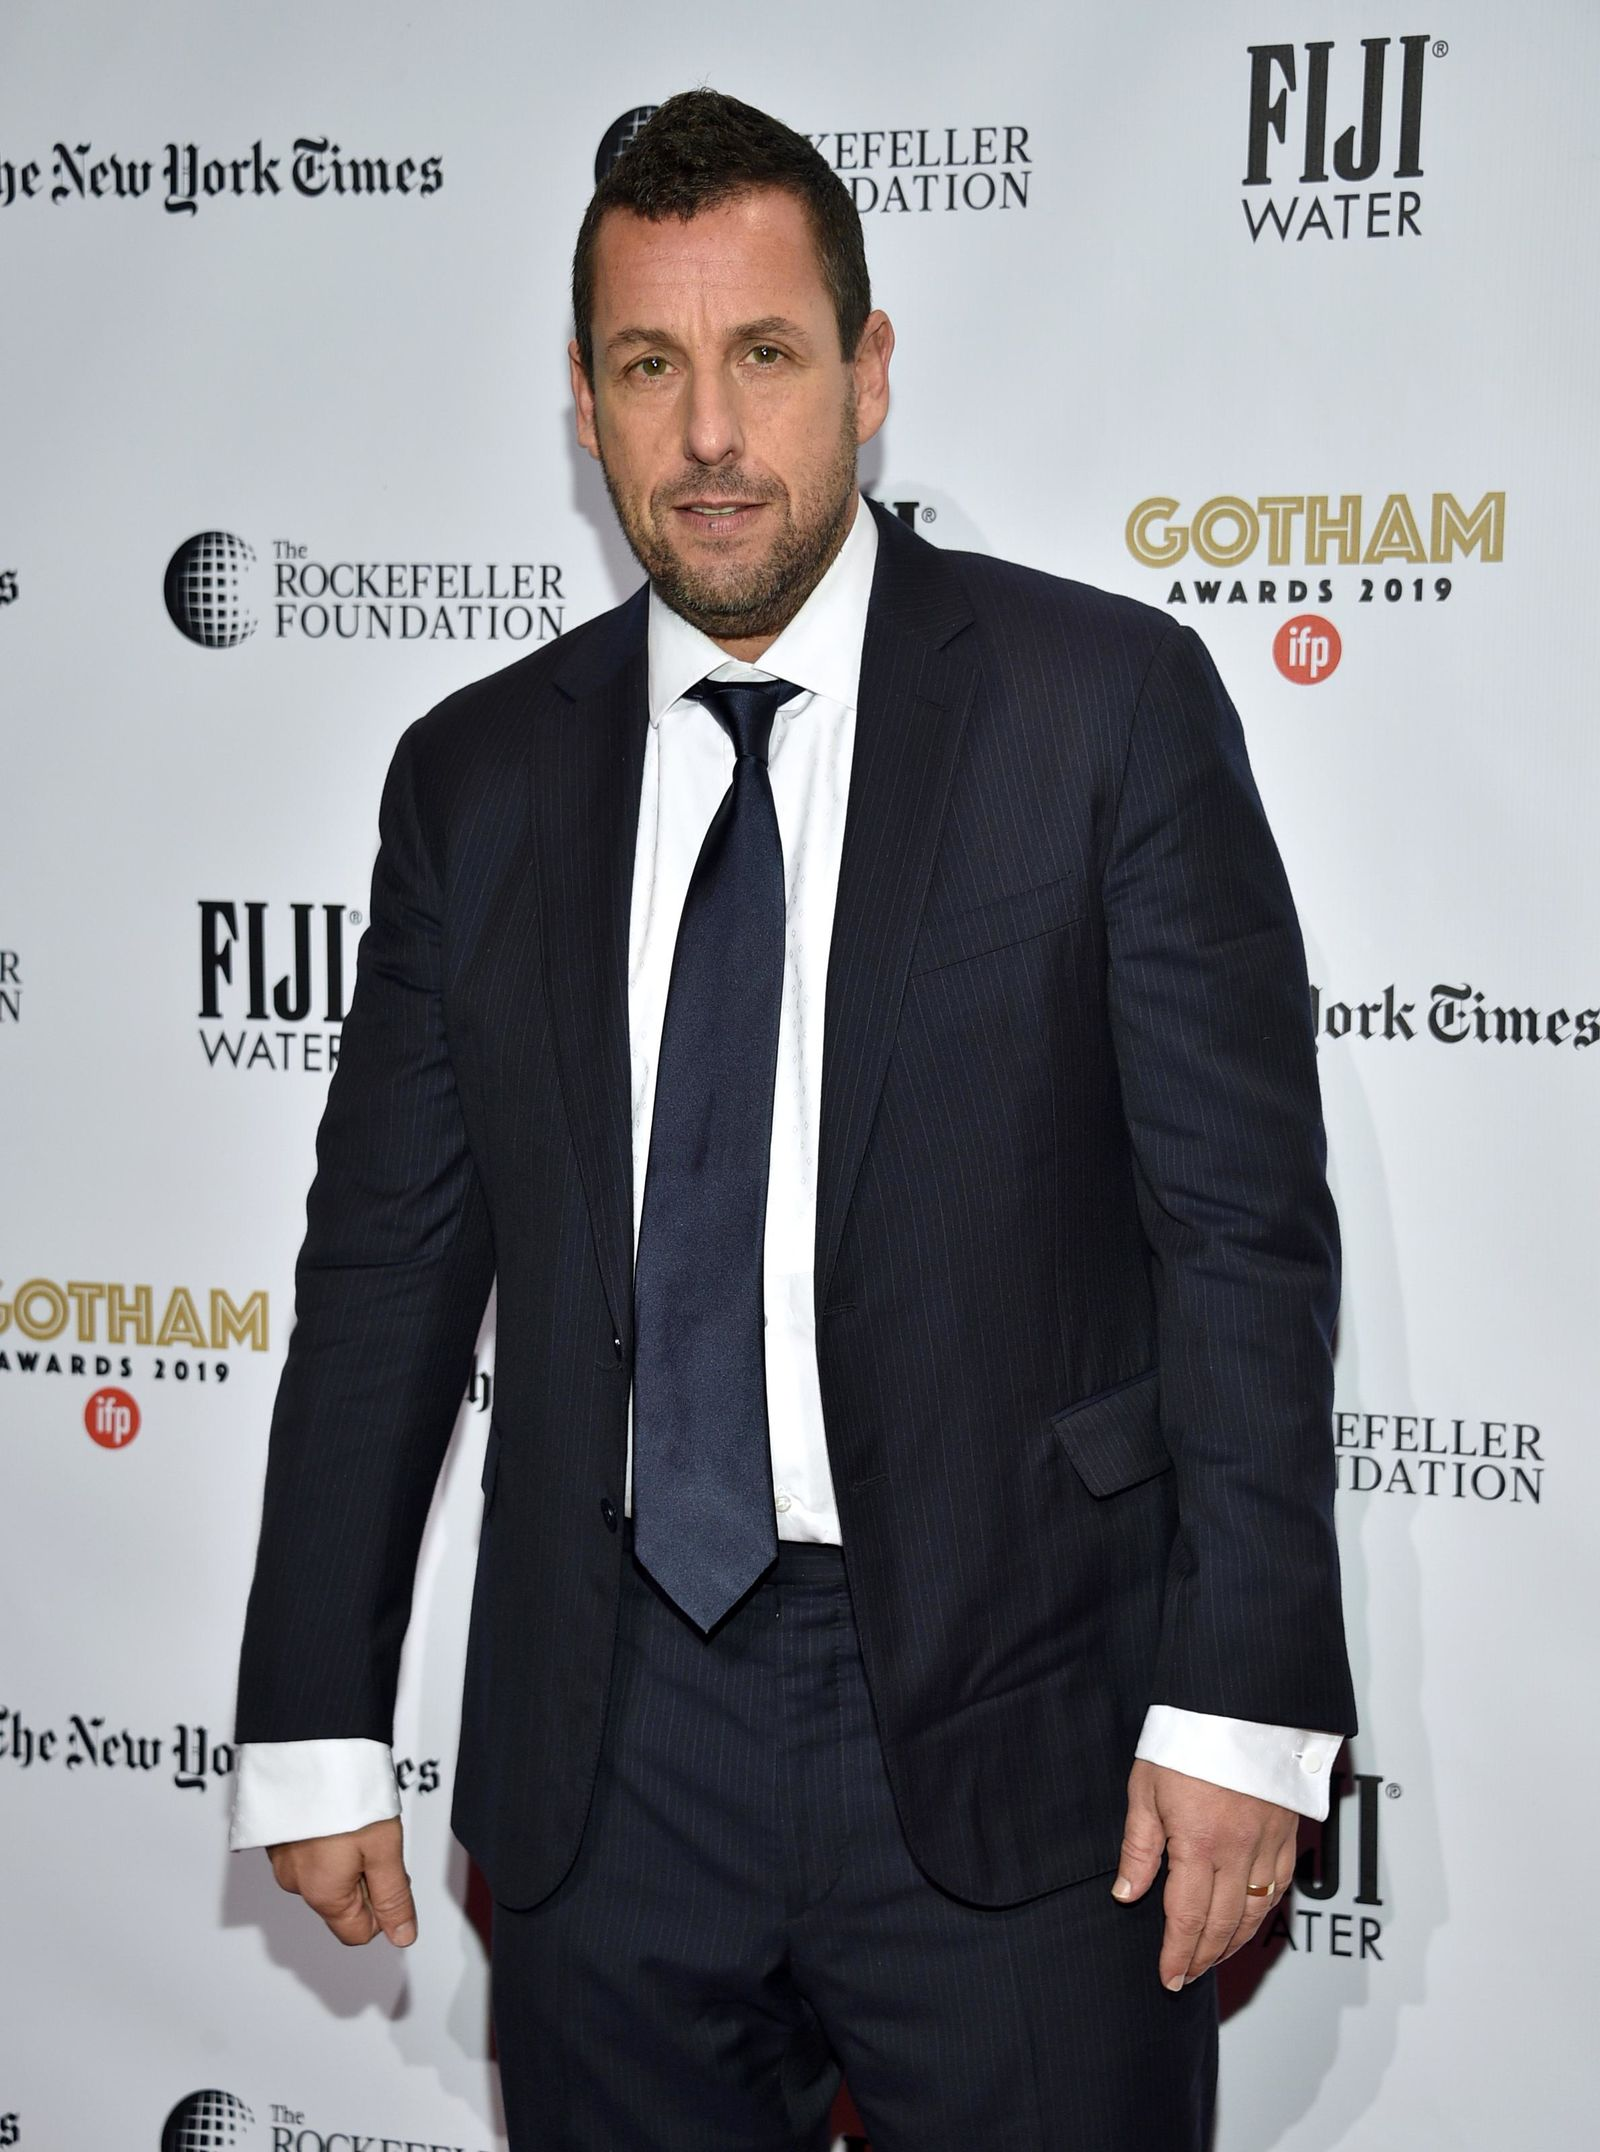 Adam Sandler attends the Independent Filmmaker Project's 29th annual IFP Gotham Awards at Cipriani Wall Street on Monday Dec. 2, 2019, in New York. (Photo by Evan Agostini/Invision/AP)